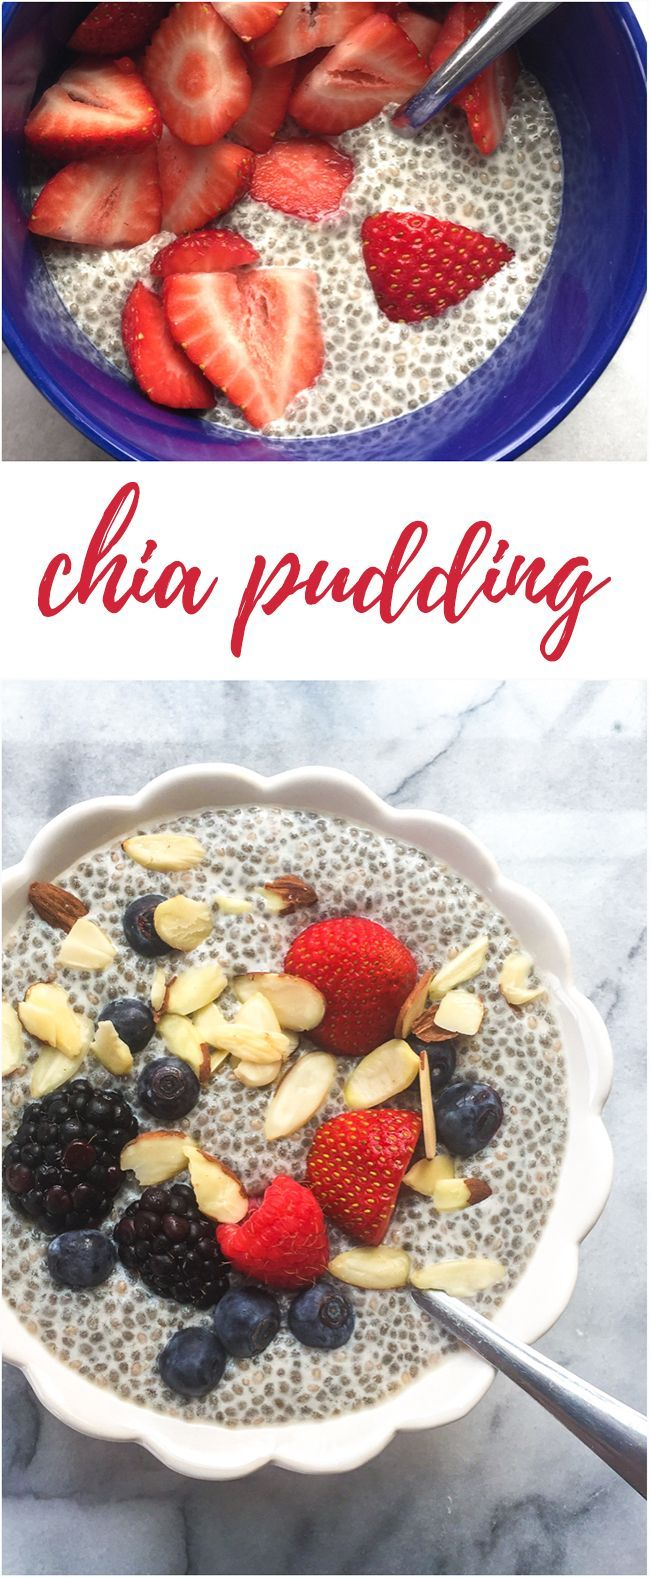 Basic Chia Pudding Recipe - This simple chia seed pudding makes a wonderful clean eating breakfast, and it's just so easy to whip up!